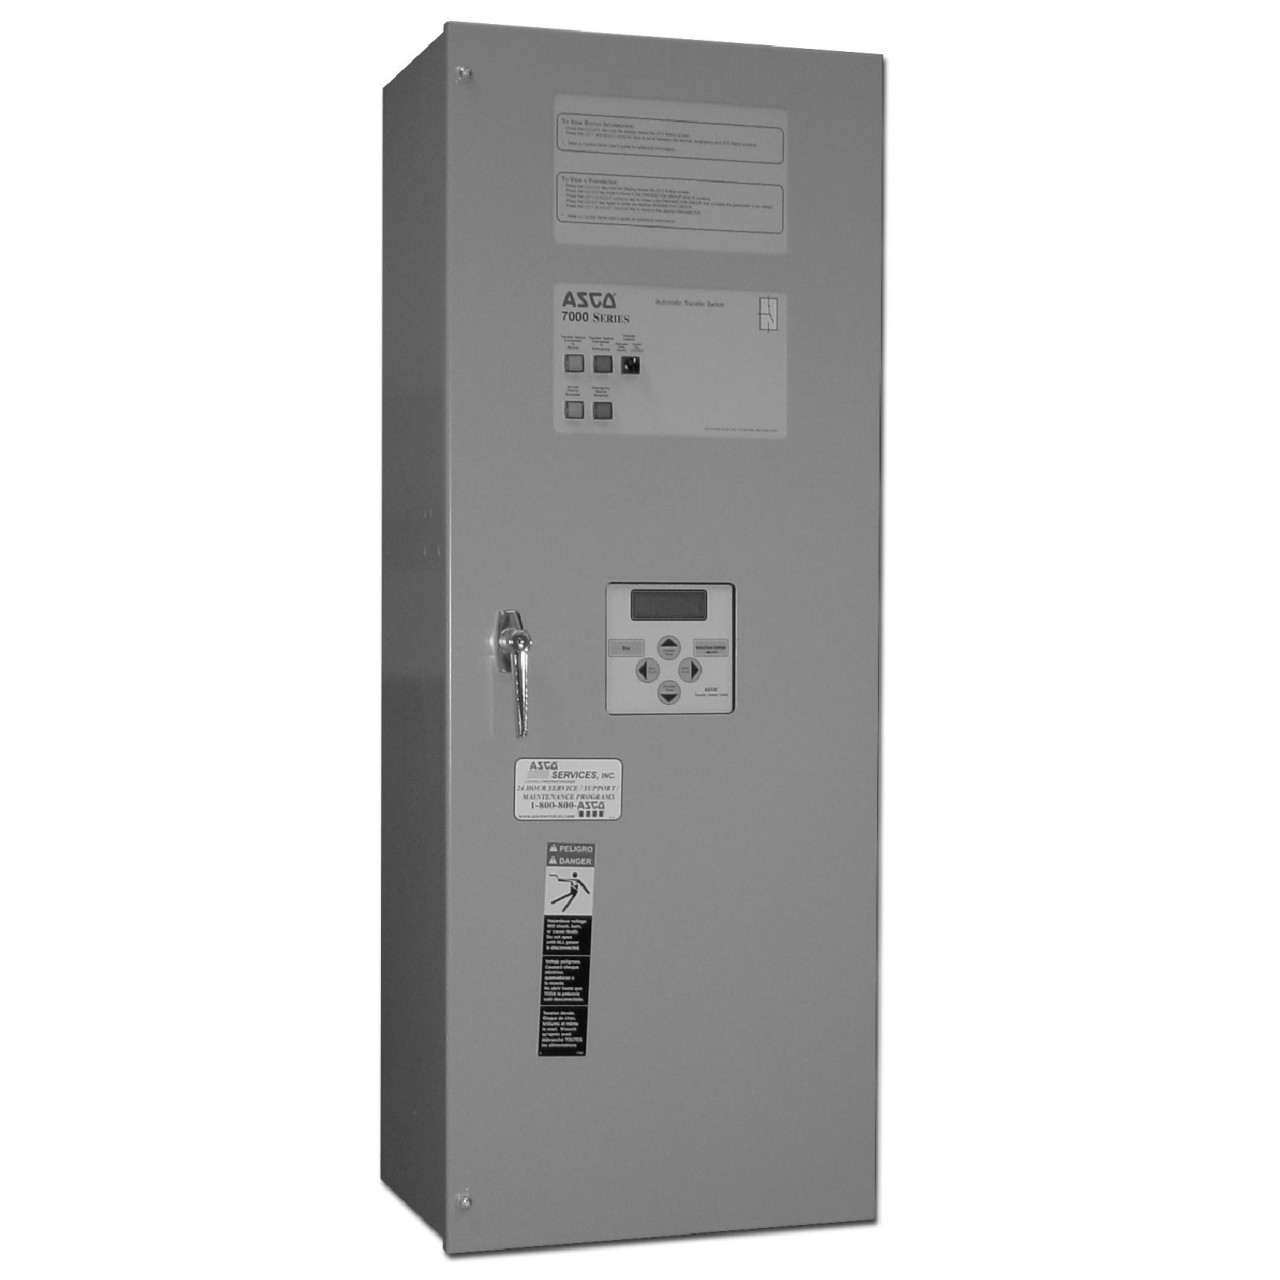 Asco 7000 Manual Transfer Switch (3Ph, 70A)